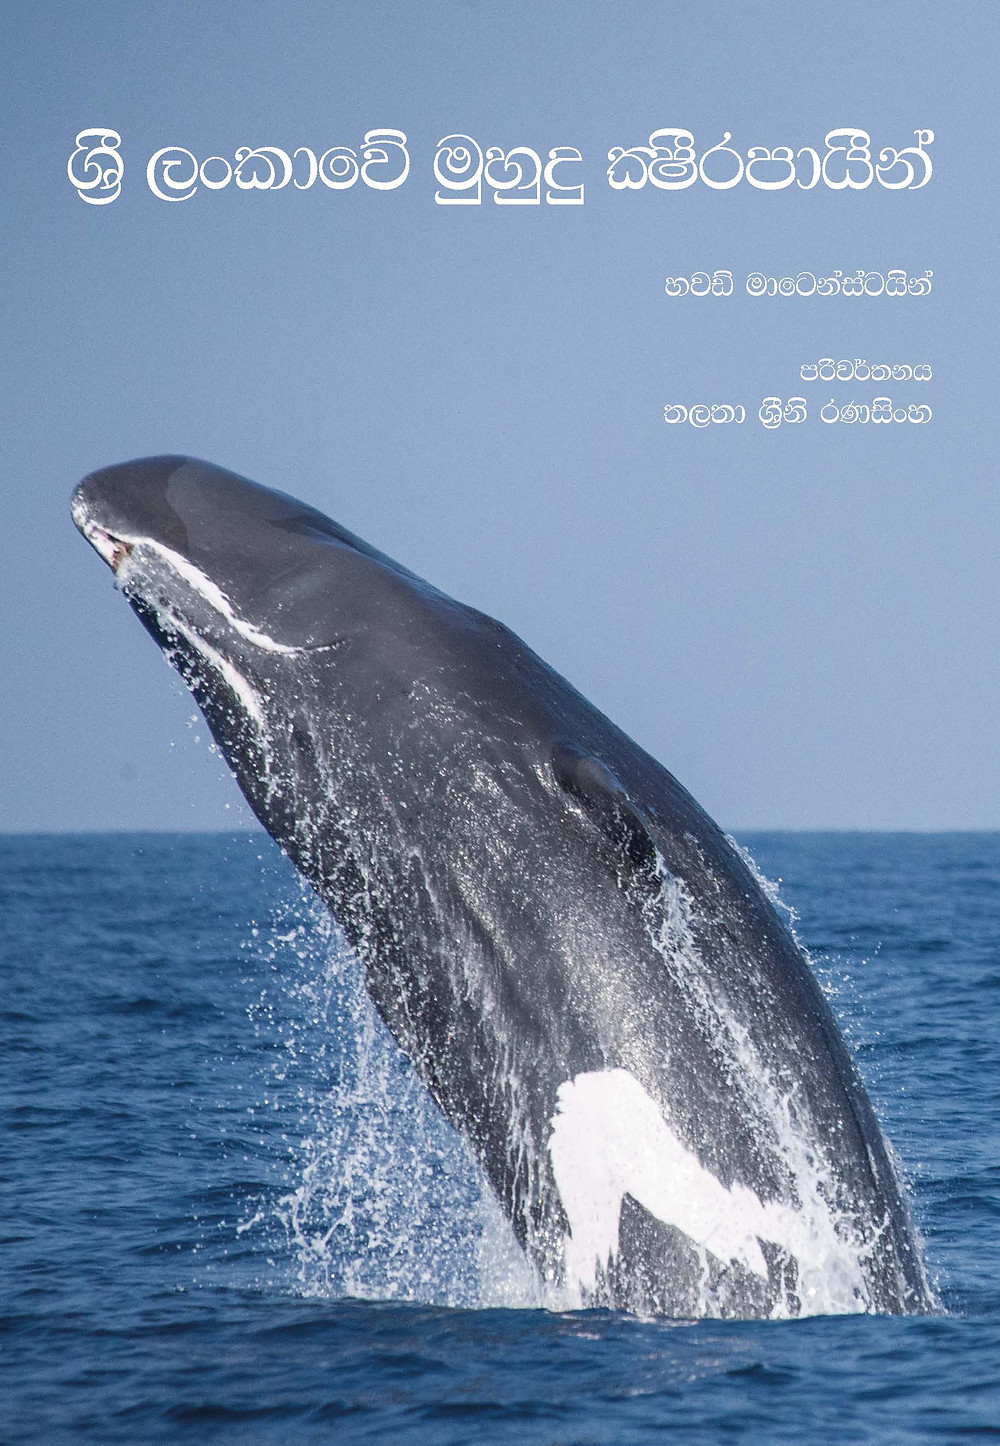 Sri Lanka Marine Mammal Research & Conservation, Technical Report